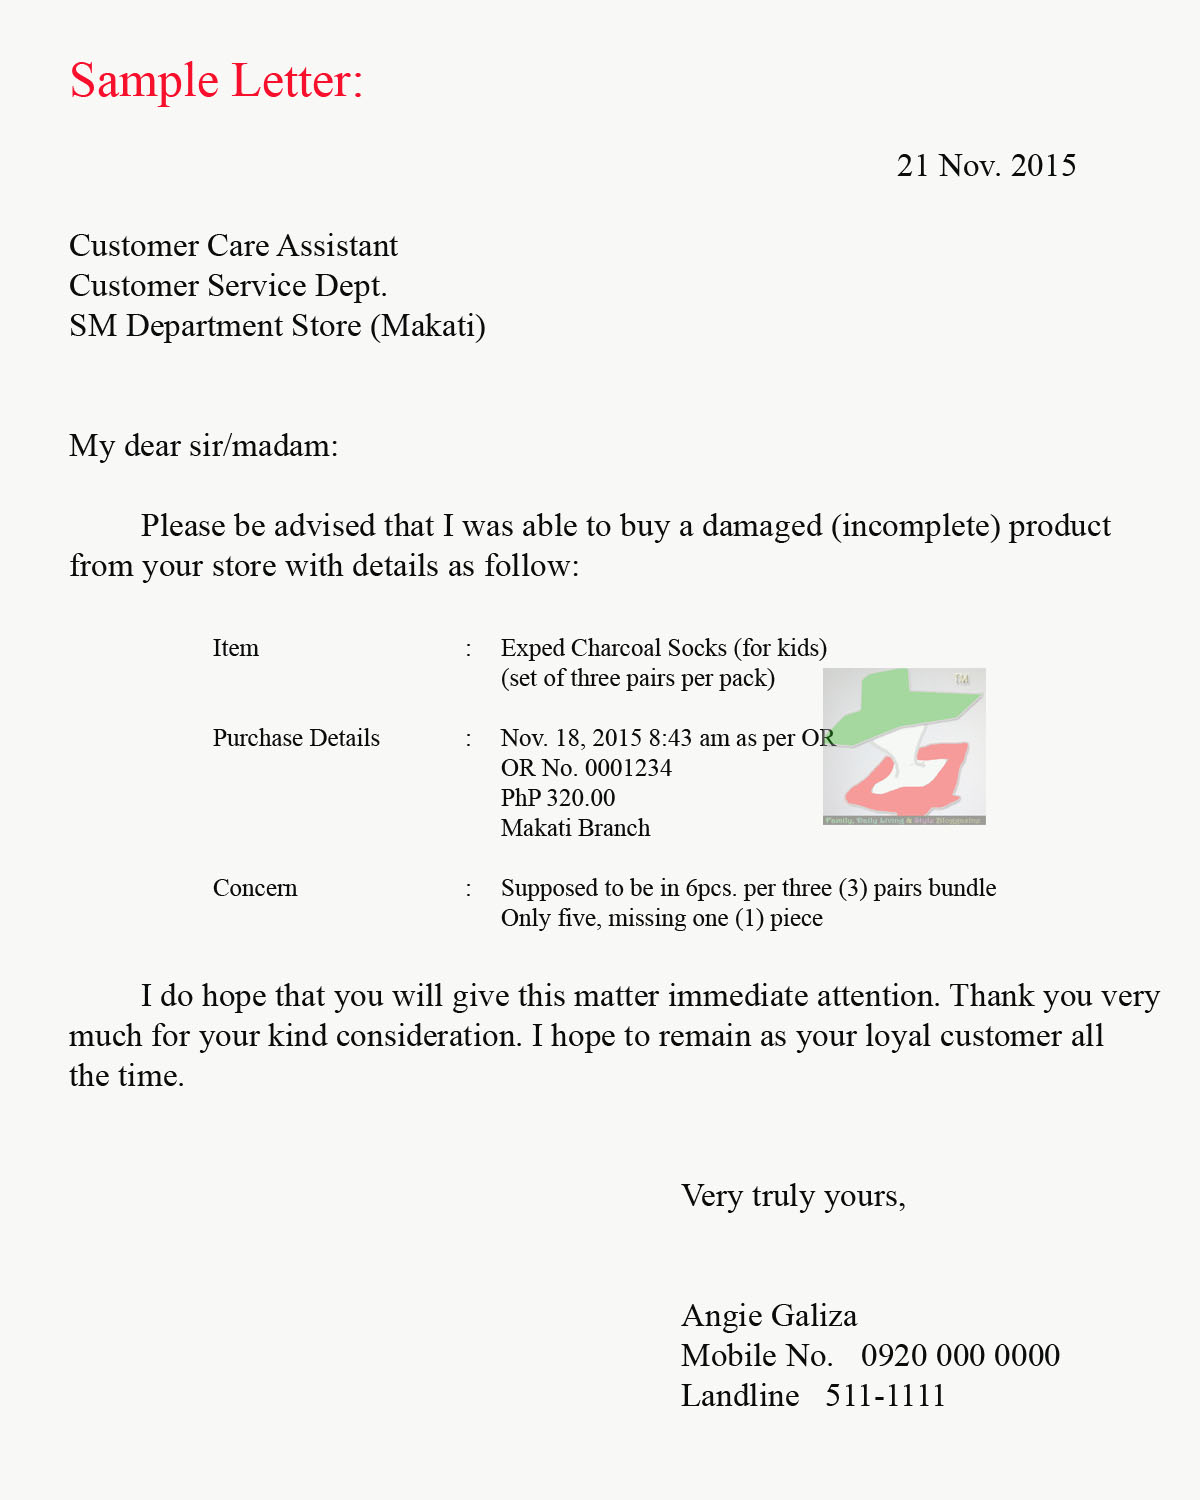 Complaint letter service example formal complaint letter template 8 sample complaint letter bank manager 93kb sample complaint letter complaint letter sample employee for letter of spiritdancerdesigns Gallery